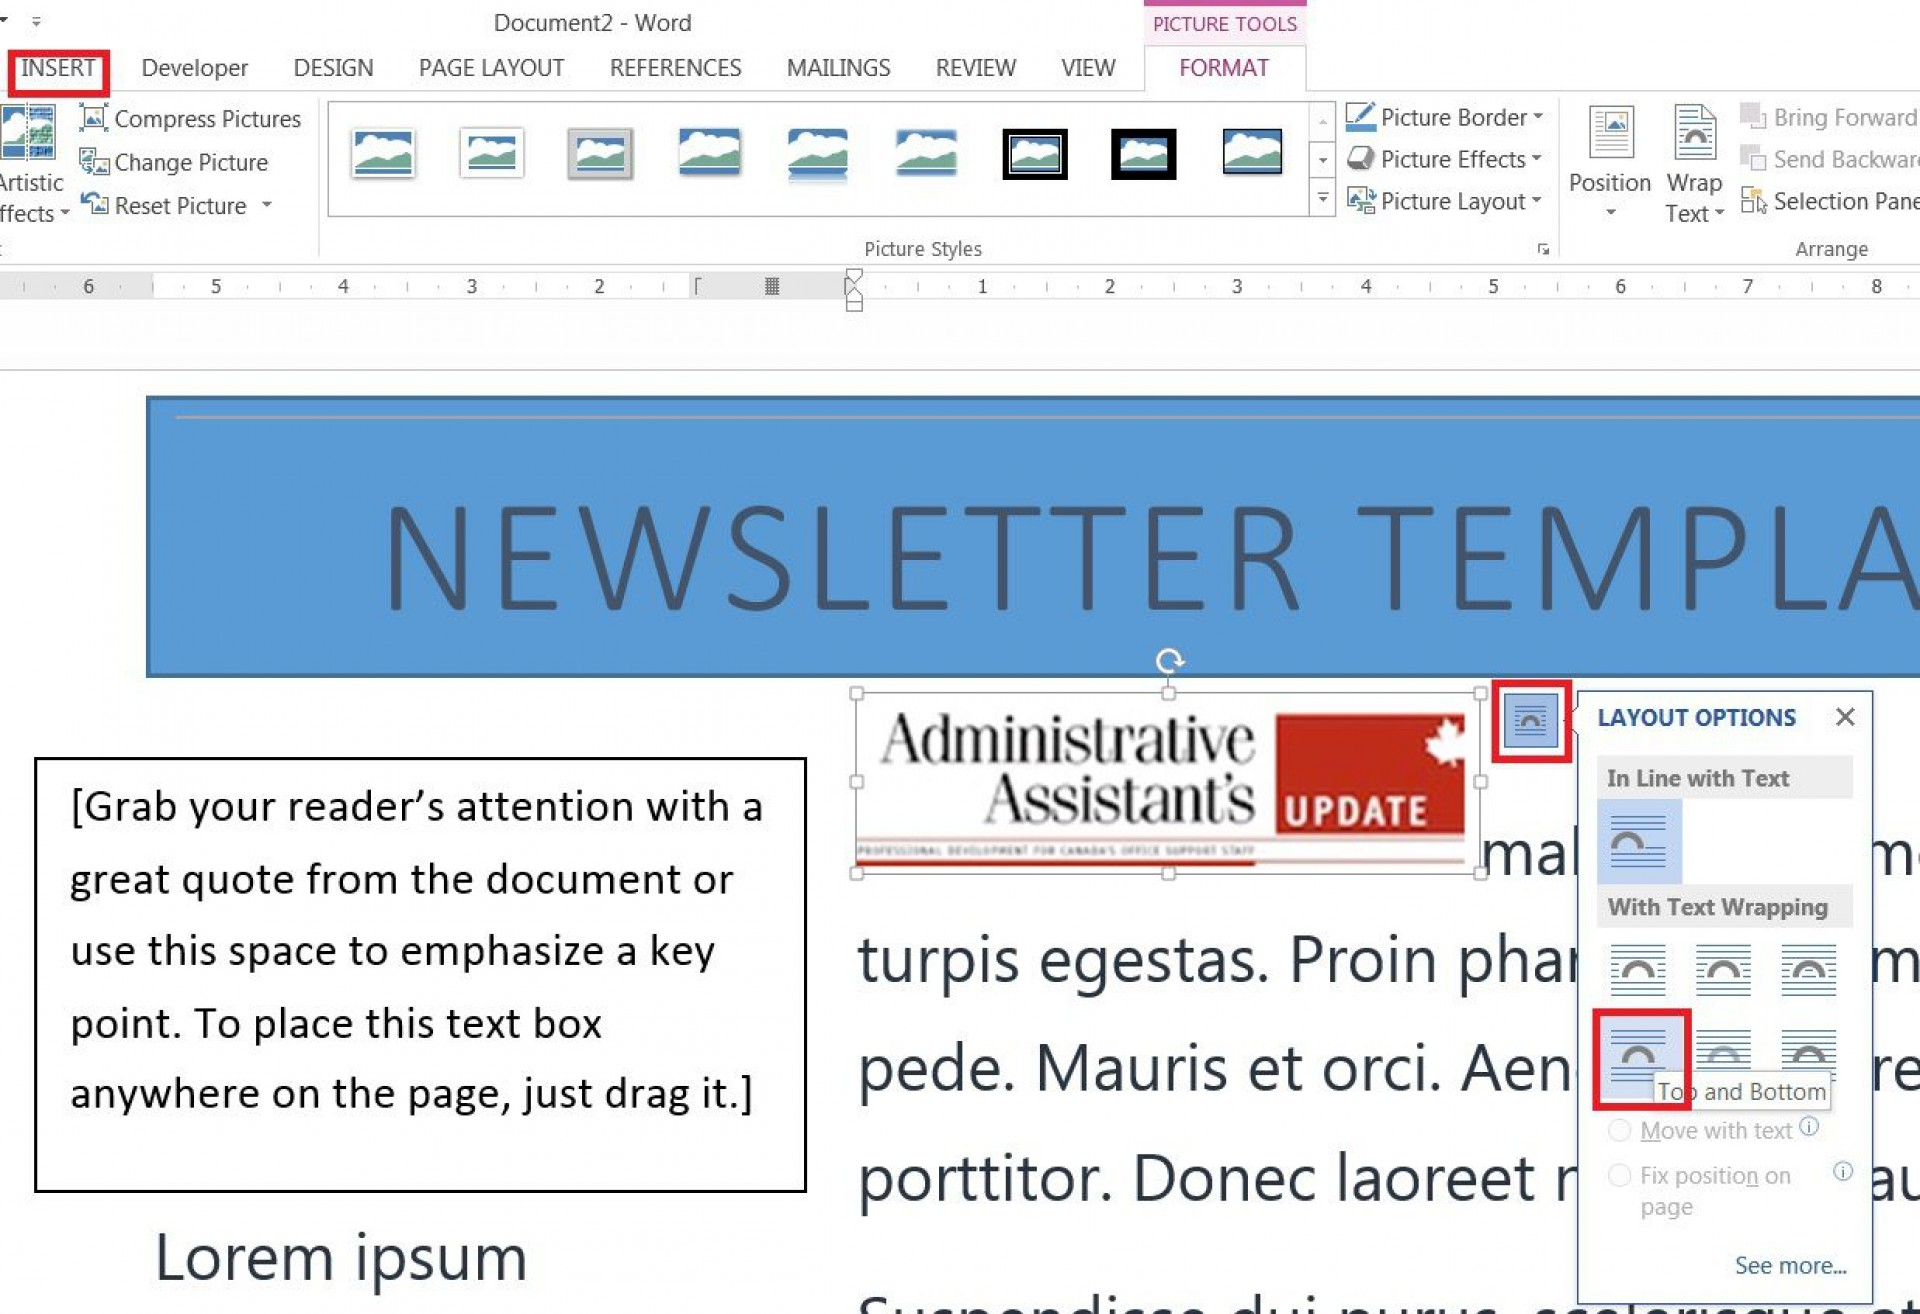 006 Unbelievable Newsletter Template Microsoft Word High Resolution  Download Free Blank1920